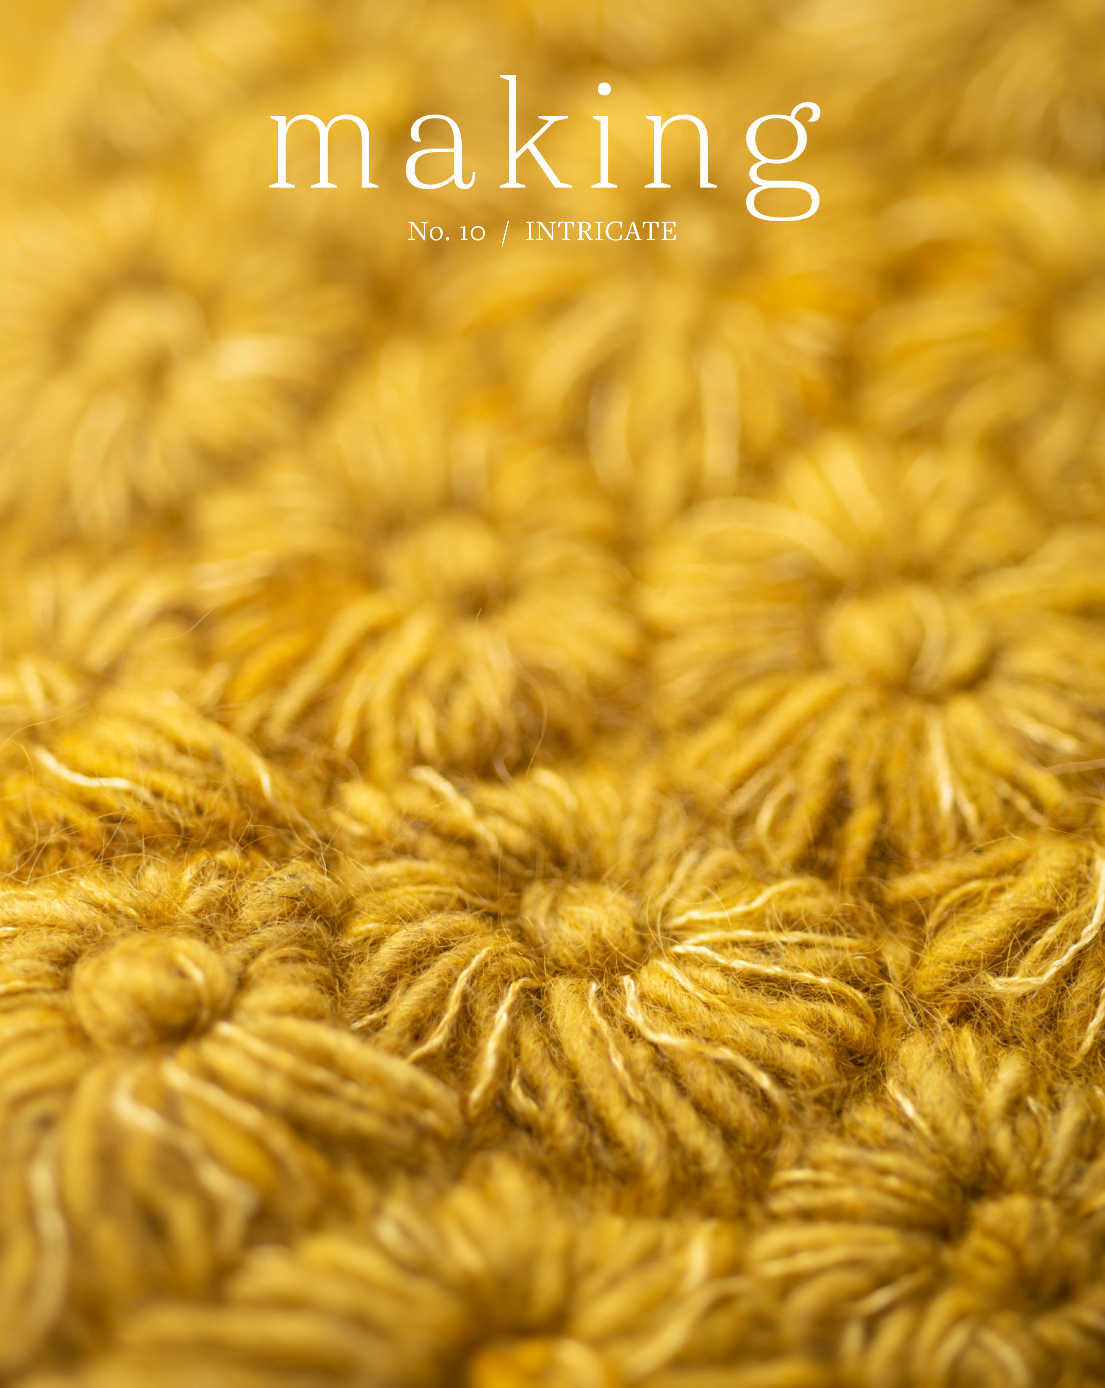 Making No. 10 - Intricate